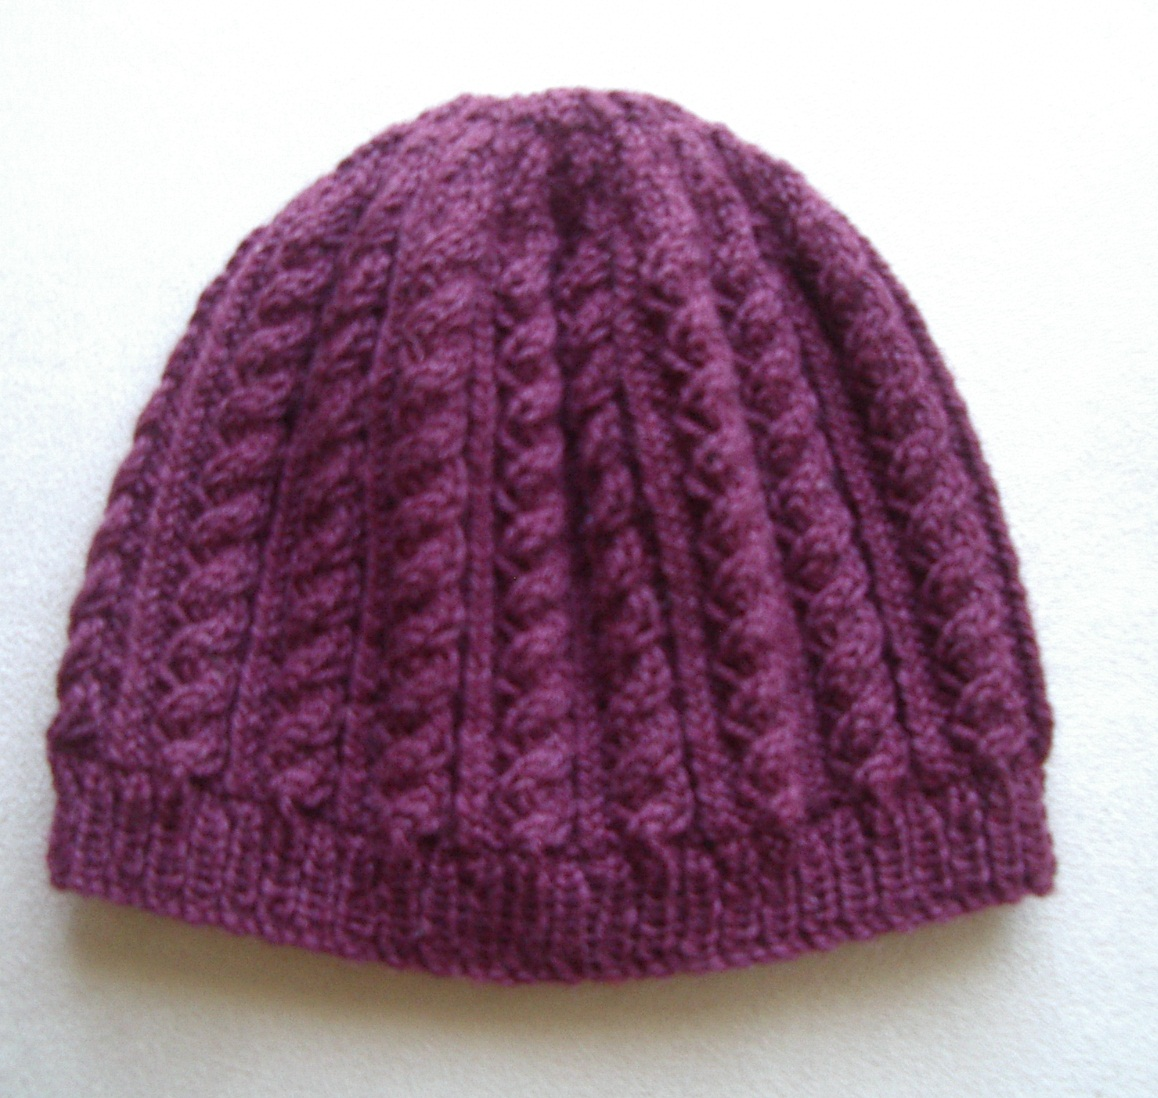 Knitting Beanie Patterns : Knitting patterns online knitted beanie scarf and